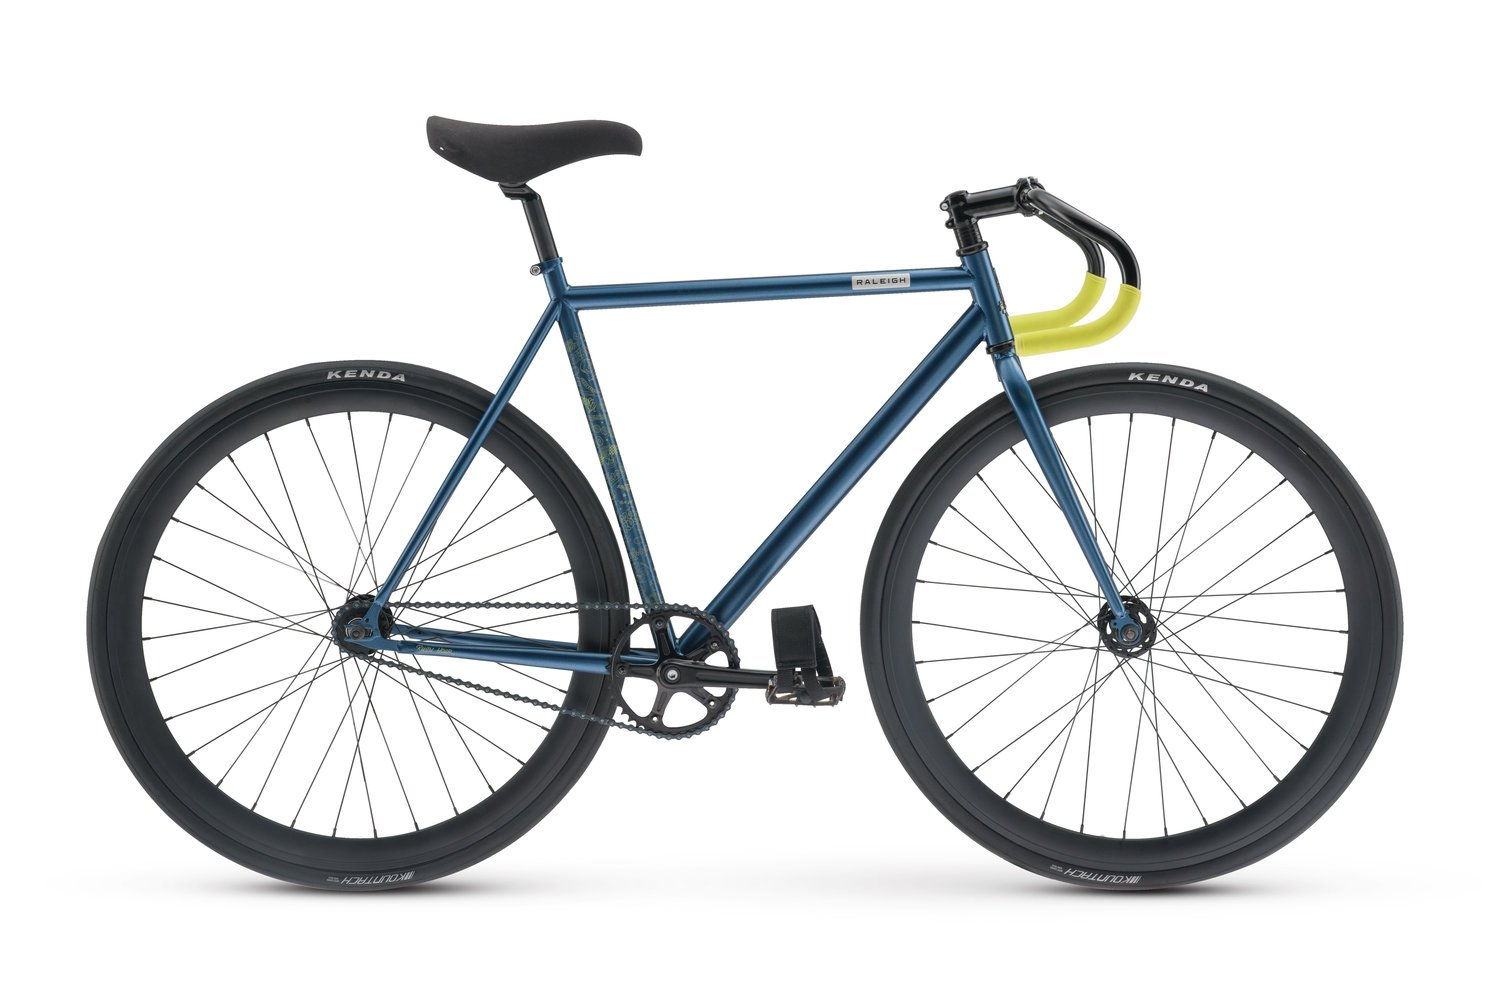 Rush Hour Complete City Bike Best Touring Bikes Under $500